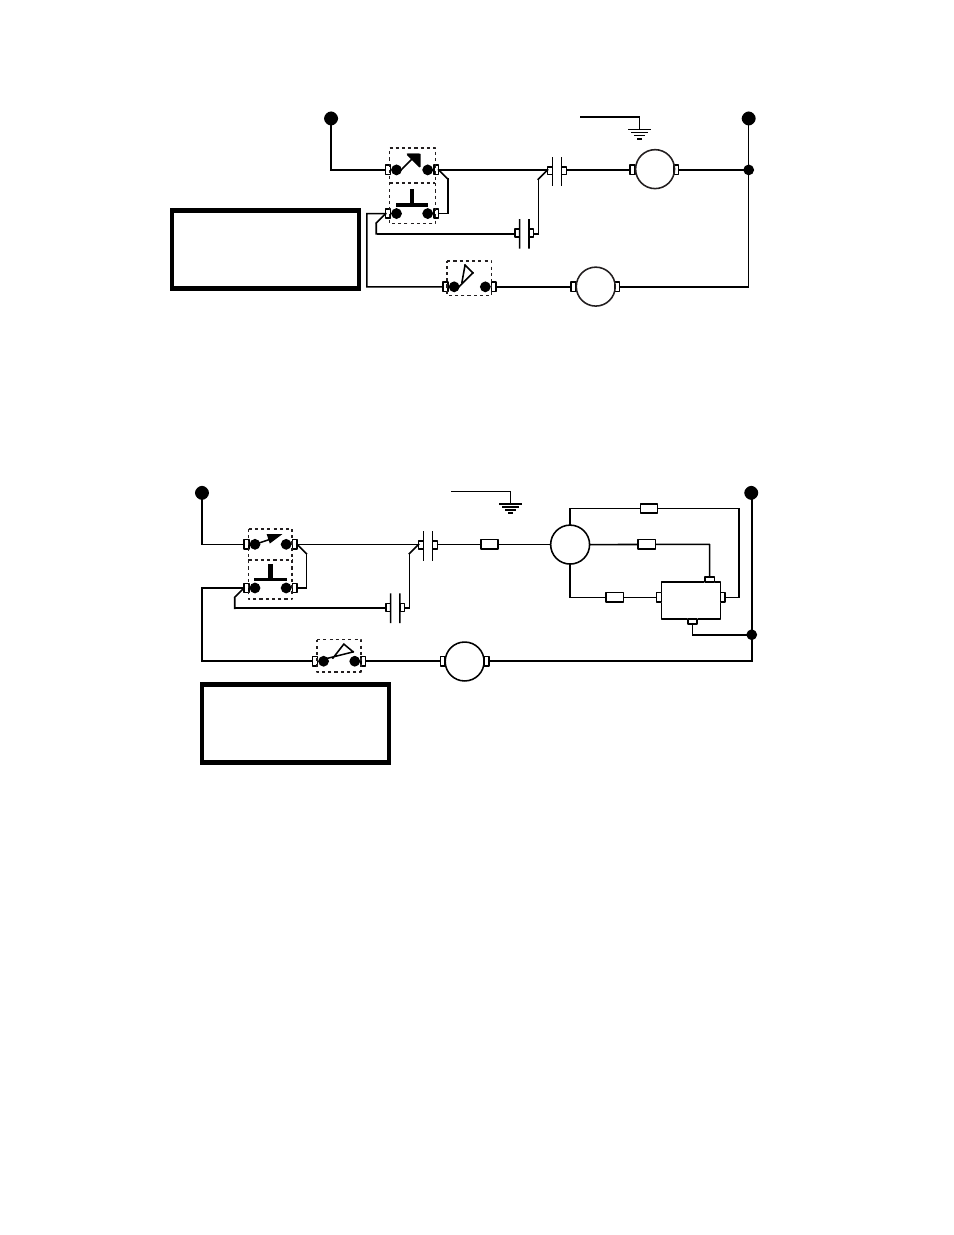 G1 Wiring Diagram Schematic Md G2 G3 Bunn User Manual Page 20 22